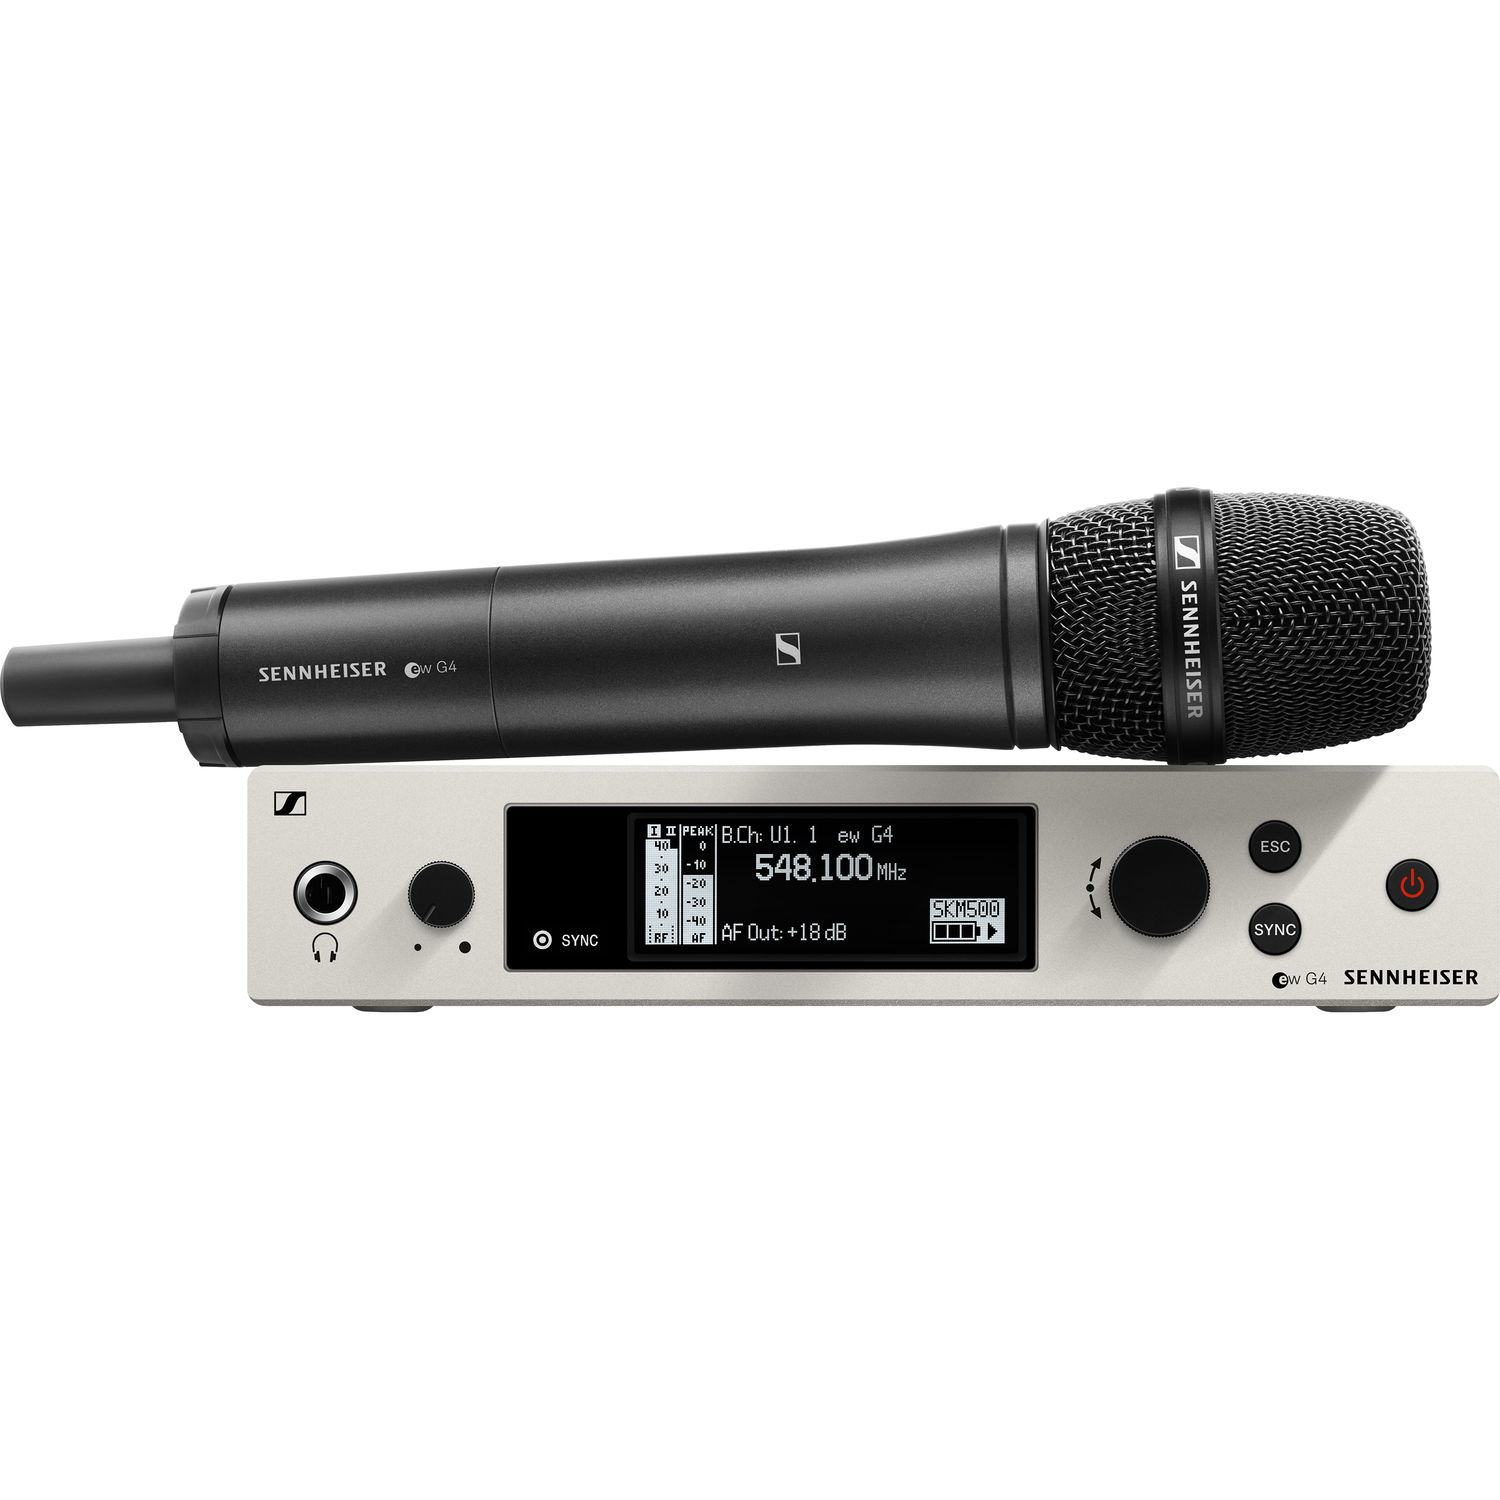 Sennheiser EW 500 G4-935 Wireless Handheld Microphone System with MMD 935 Capsule